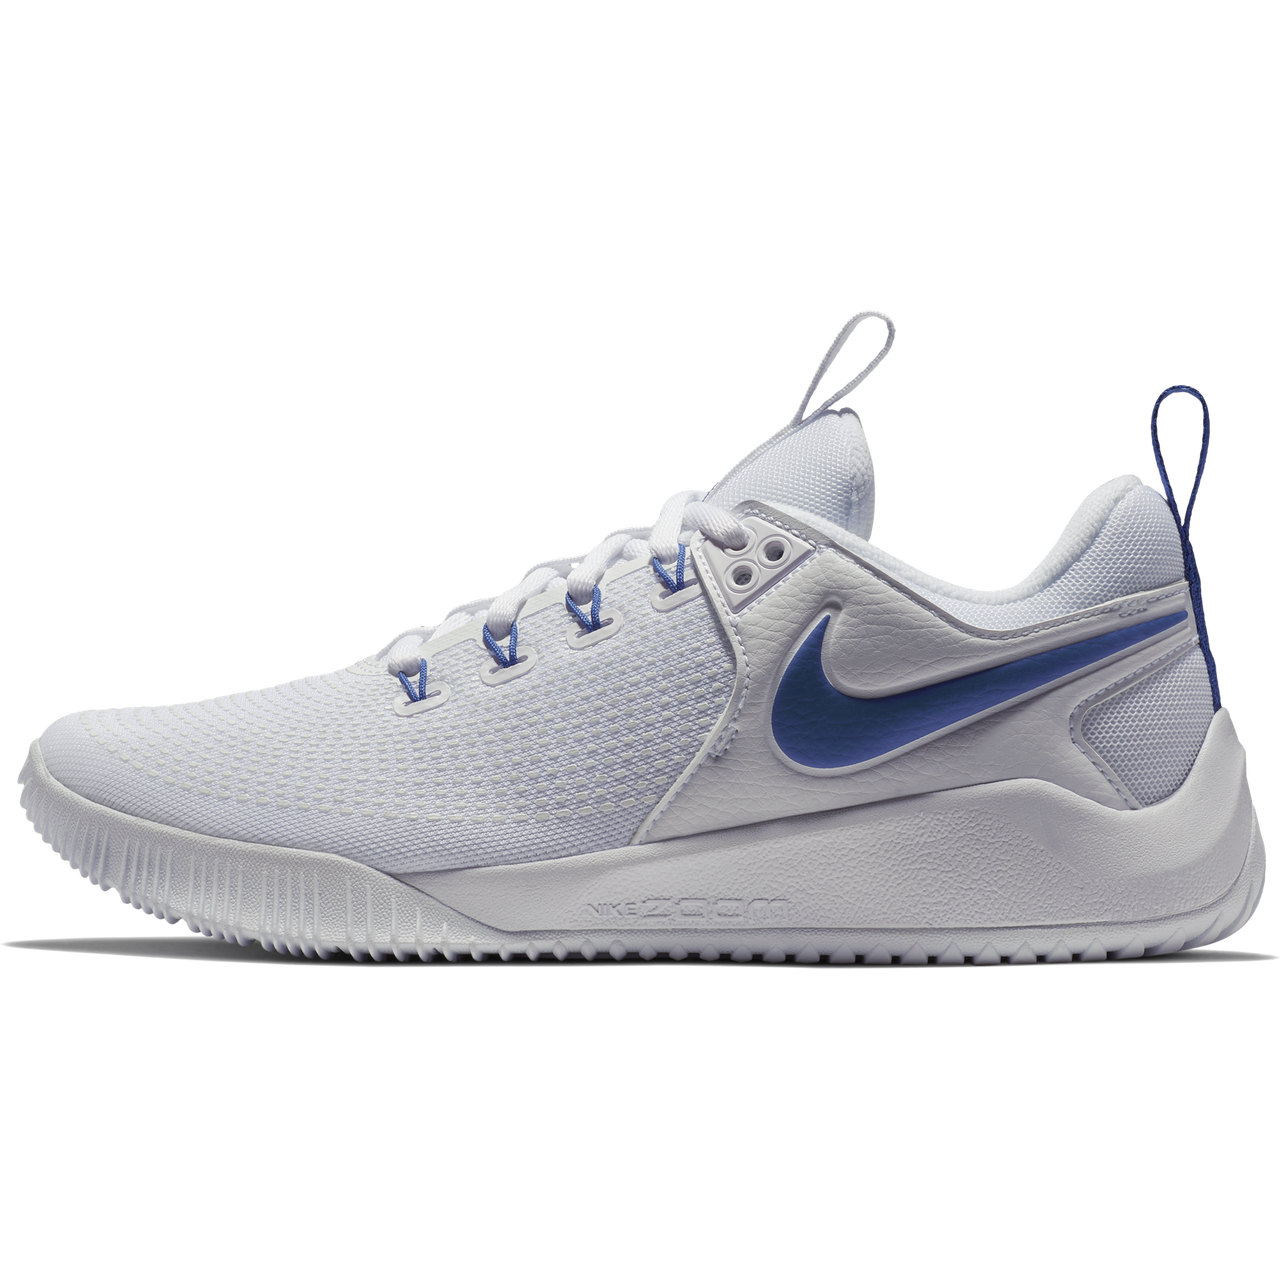 549edc6f119e Nike Women s Zoom HyperAce 2 Volleyball Shoe - White Game Royal